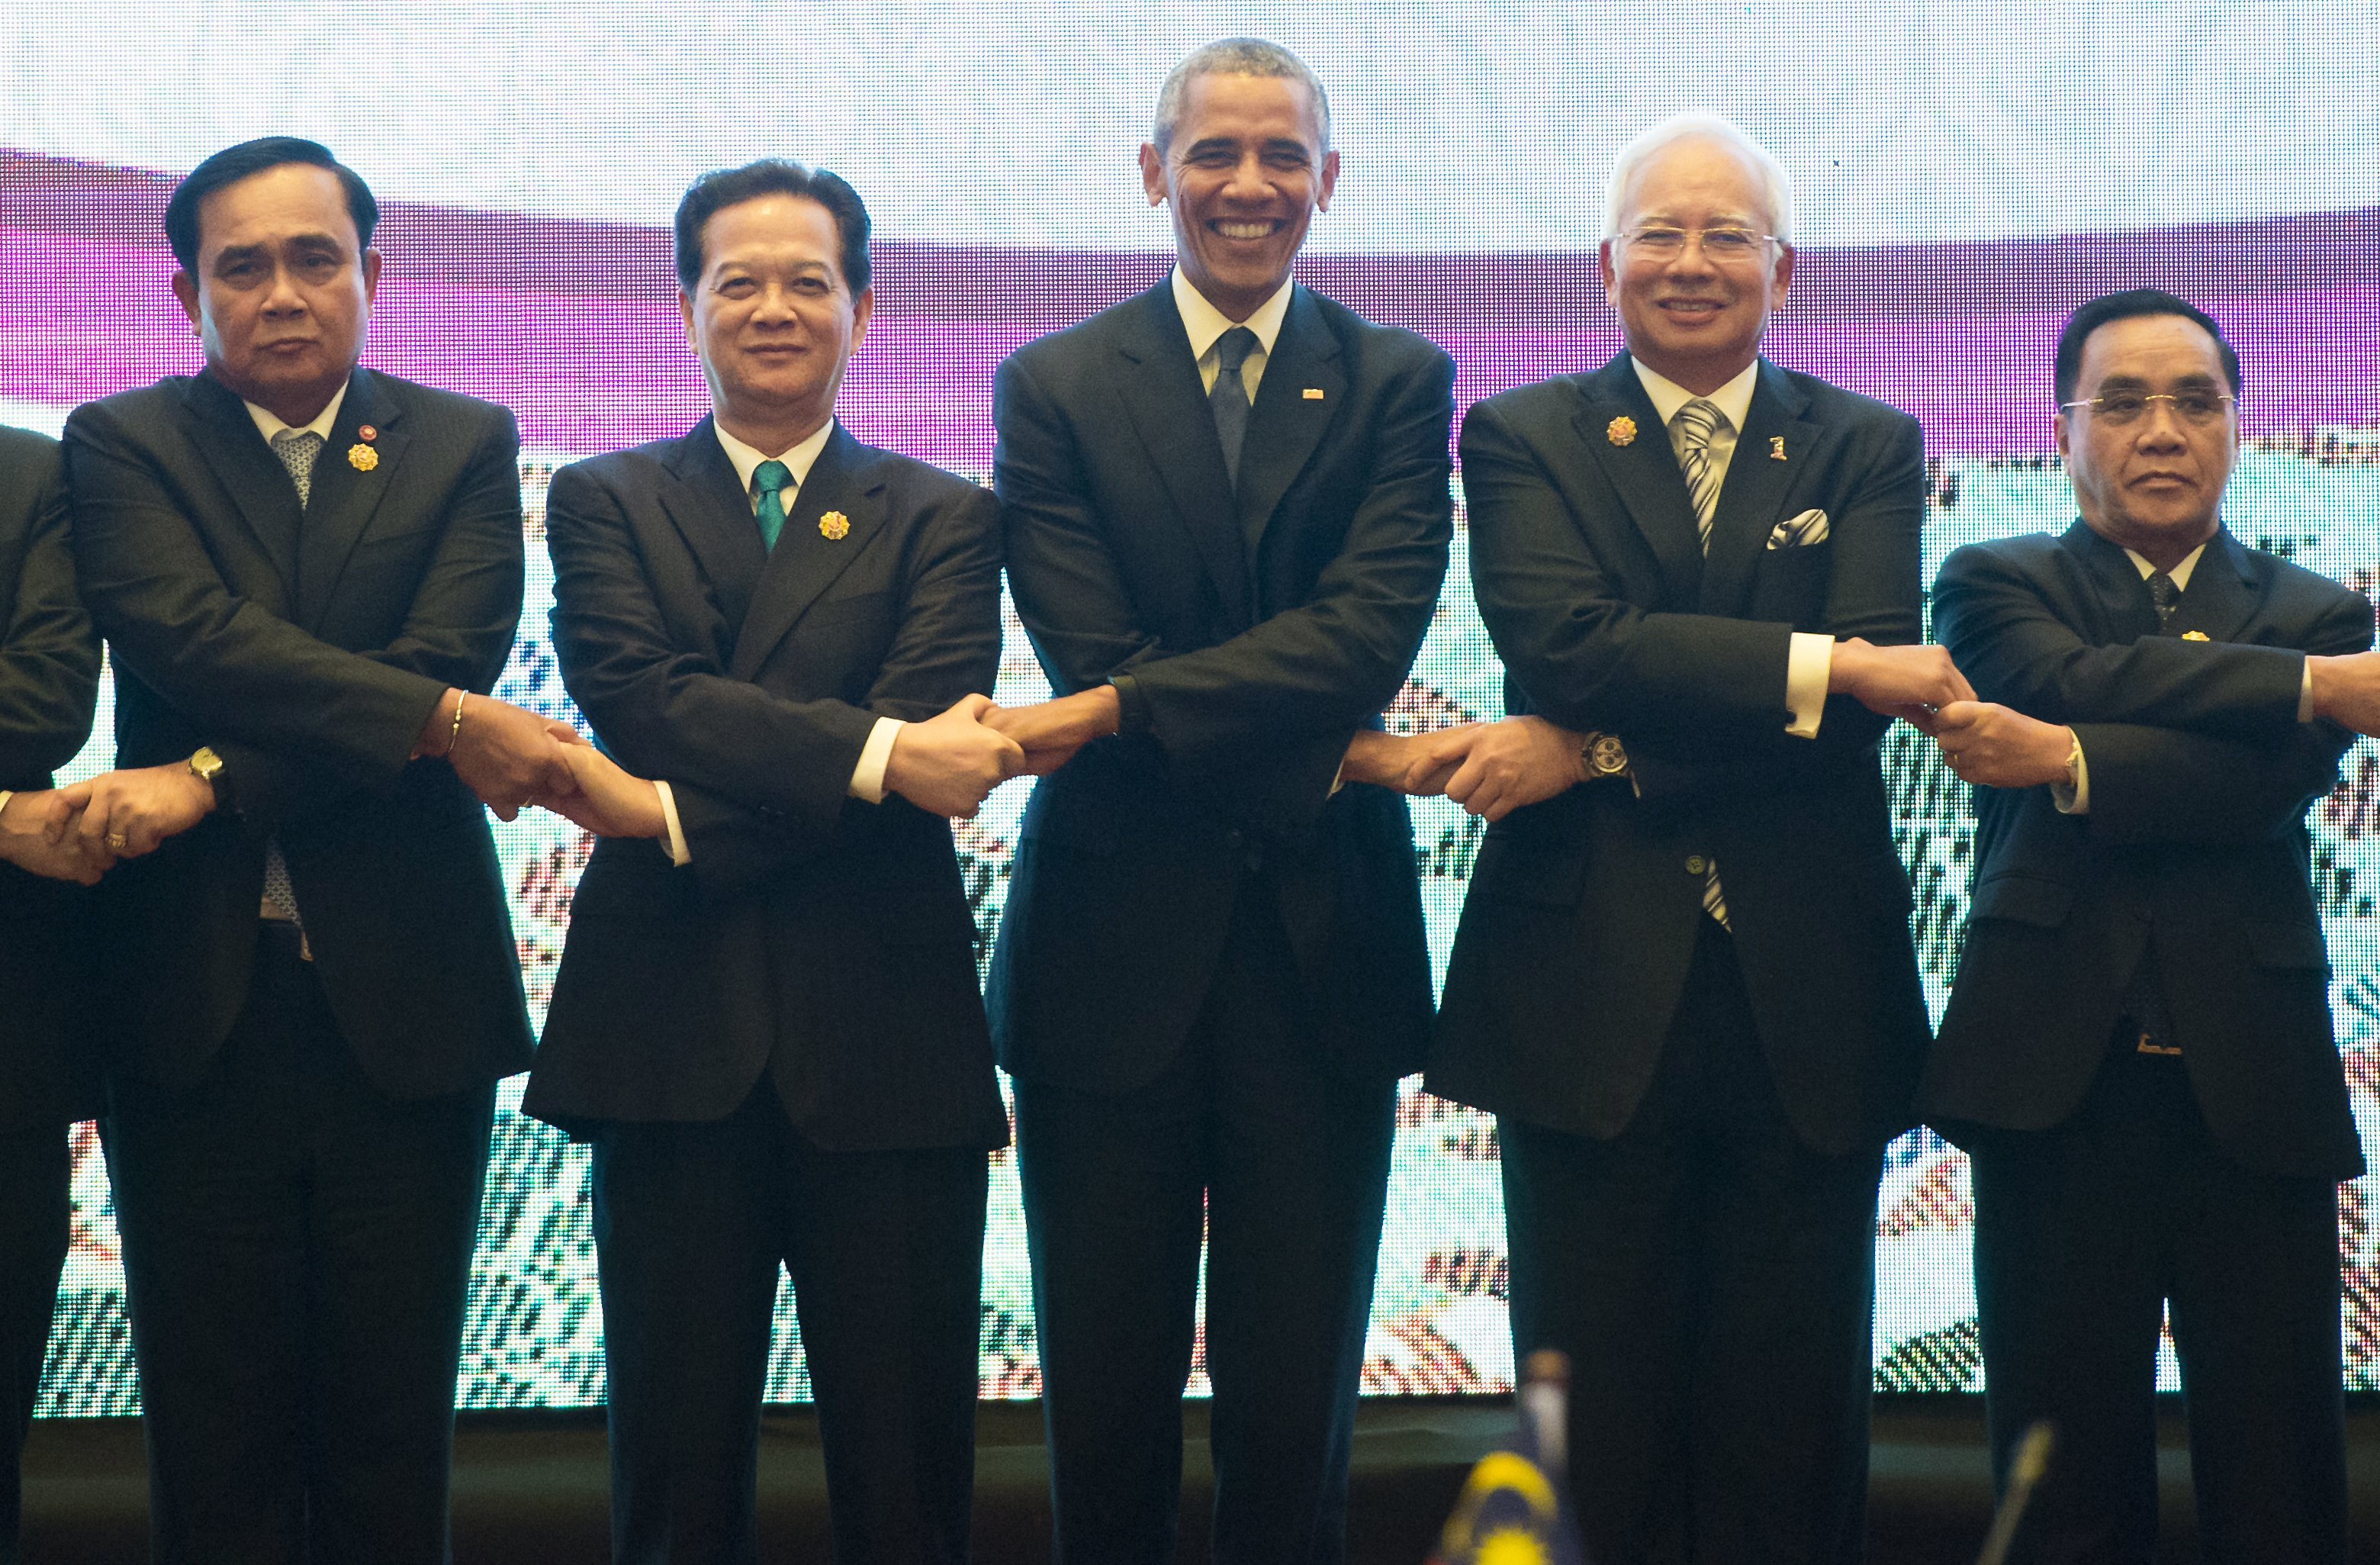 U.S. President Barack Obama, center, participates in the U.S.-ASEAN Summit family photo at the Kuala Lumpur Convention Center, on the sidelines of the Association of Southeast Asian Nations (ASEAN) Summit, Nov. 21, 2015.